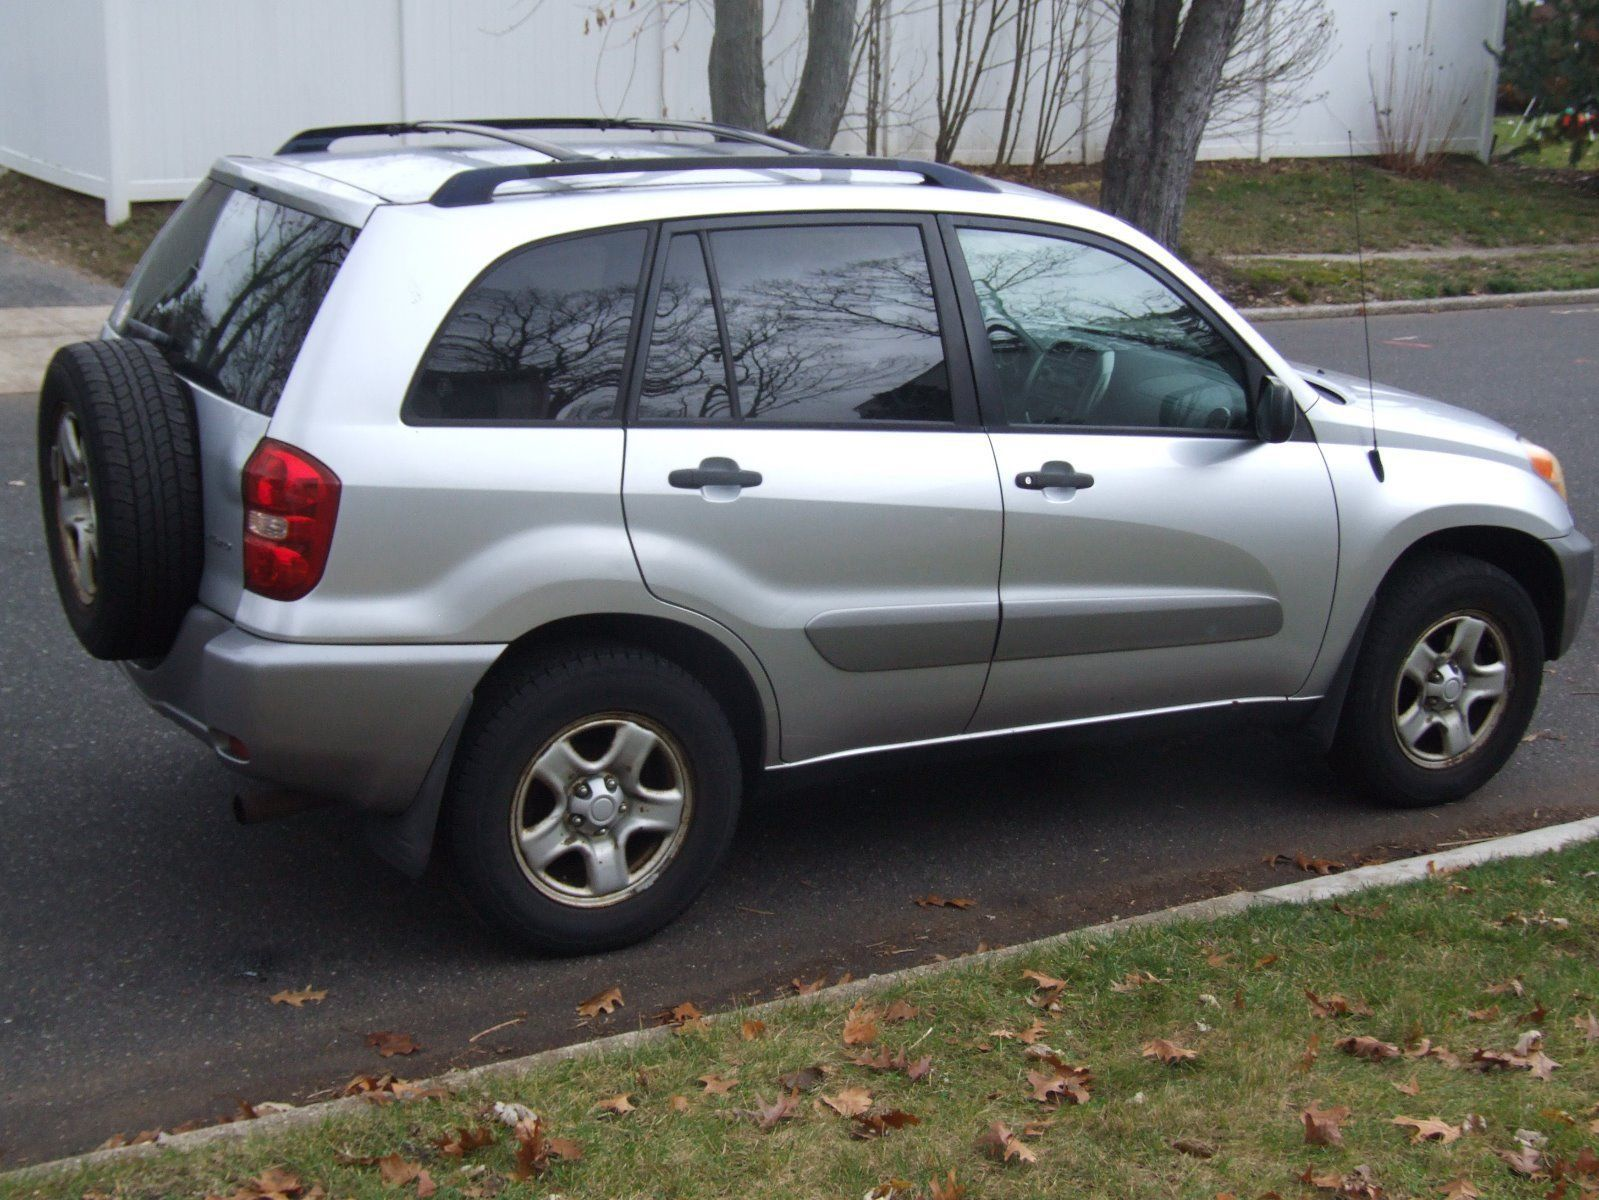 Used 2005 Toyota Rav4 2005 Toyota Automatic 2017 2018 Is In Stock And For Sale Mycarboard Com Toyota Rav4 2005 Rav4 Toyota